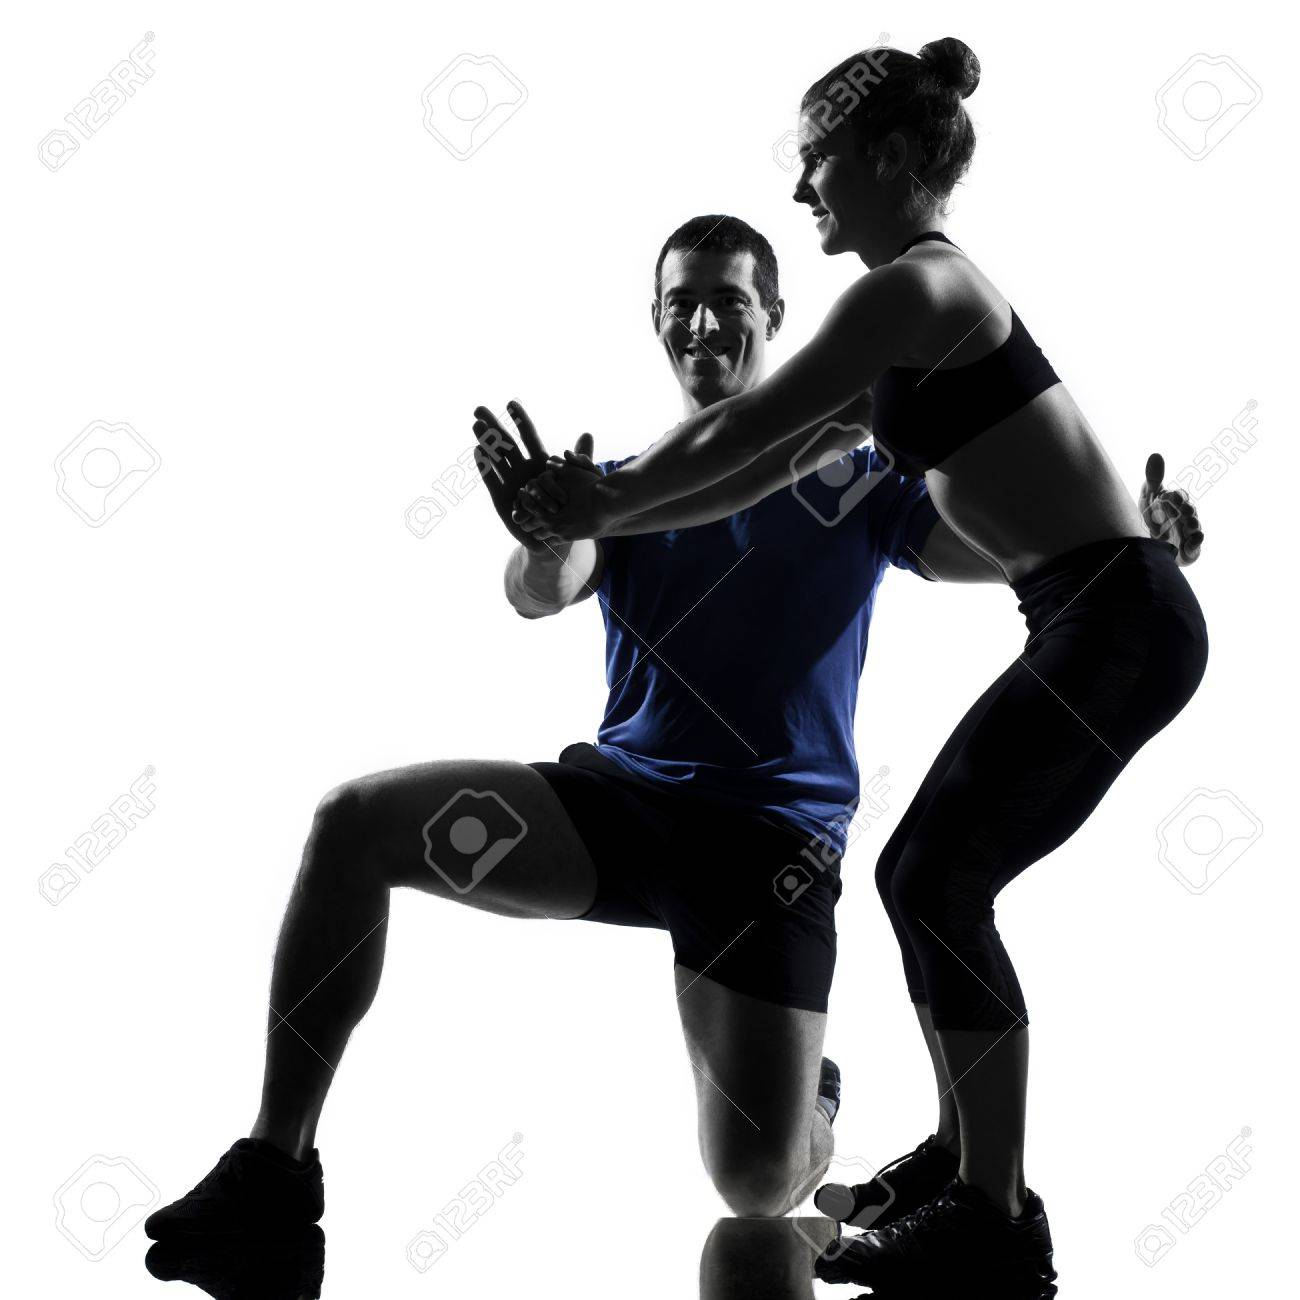 couple woman man exercising workout fitness aerobics posture in silhouette studio isolated on white background Stock Photo - 13339297